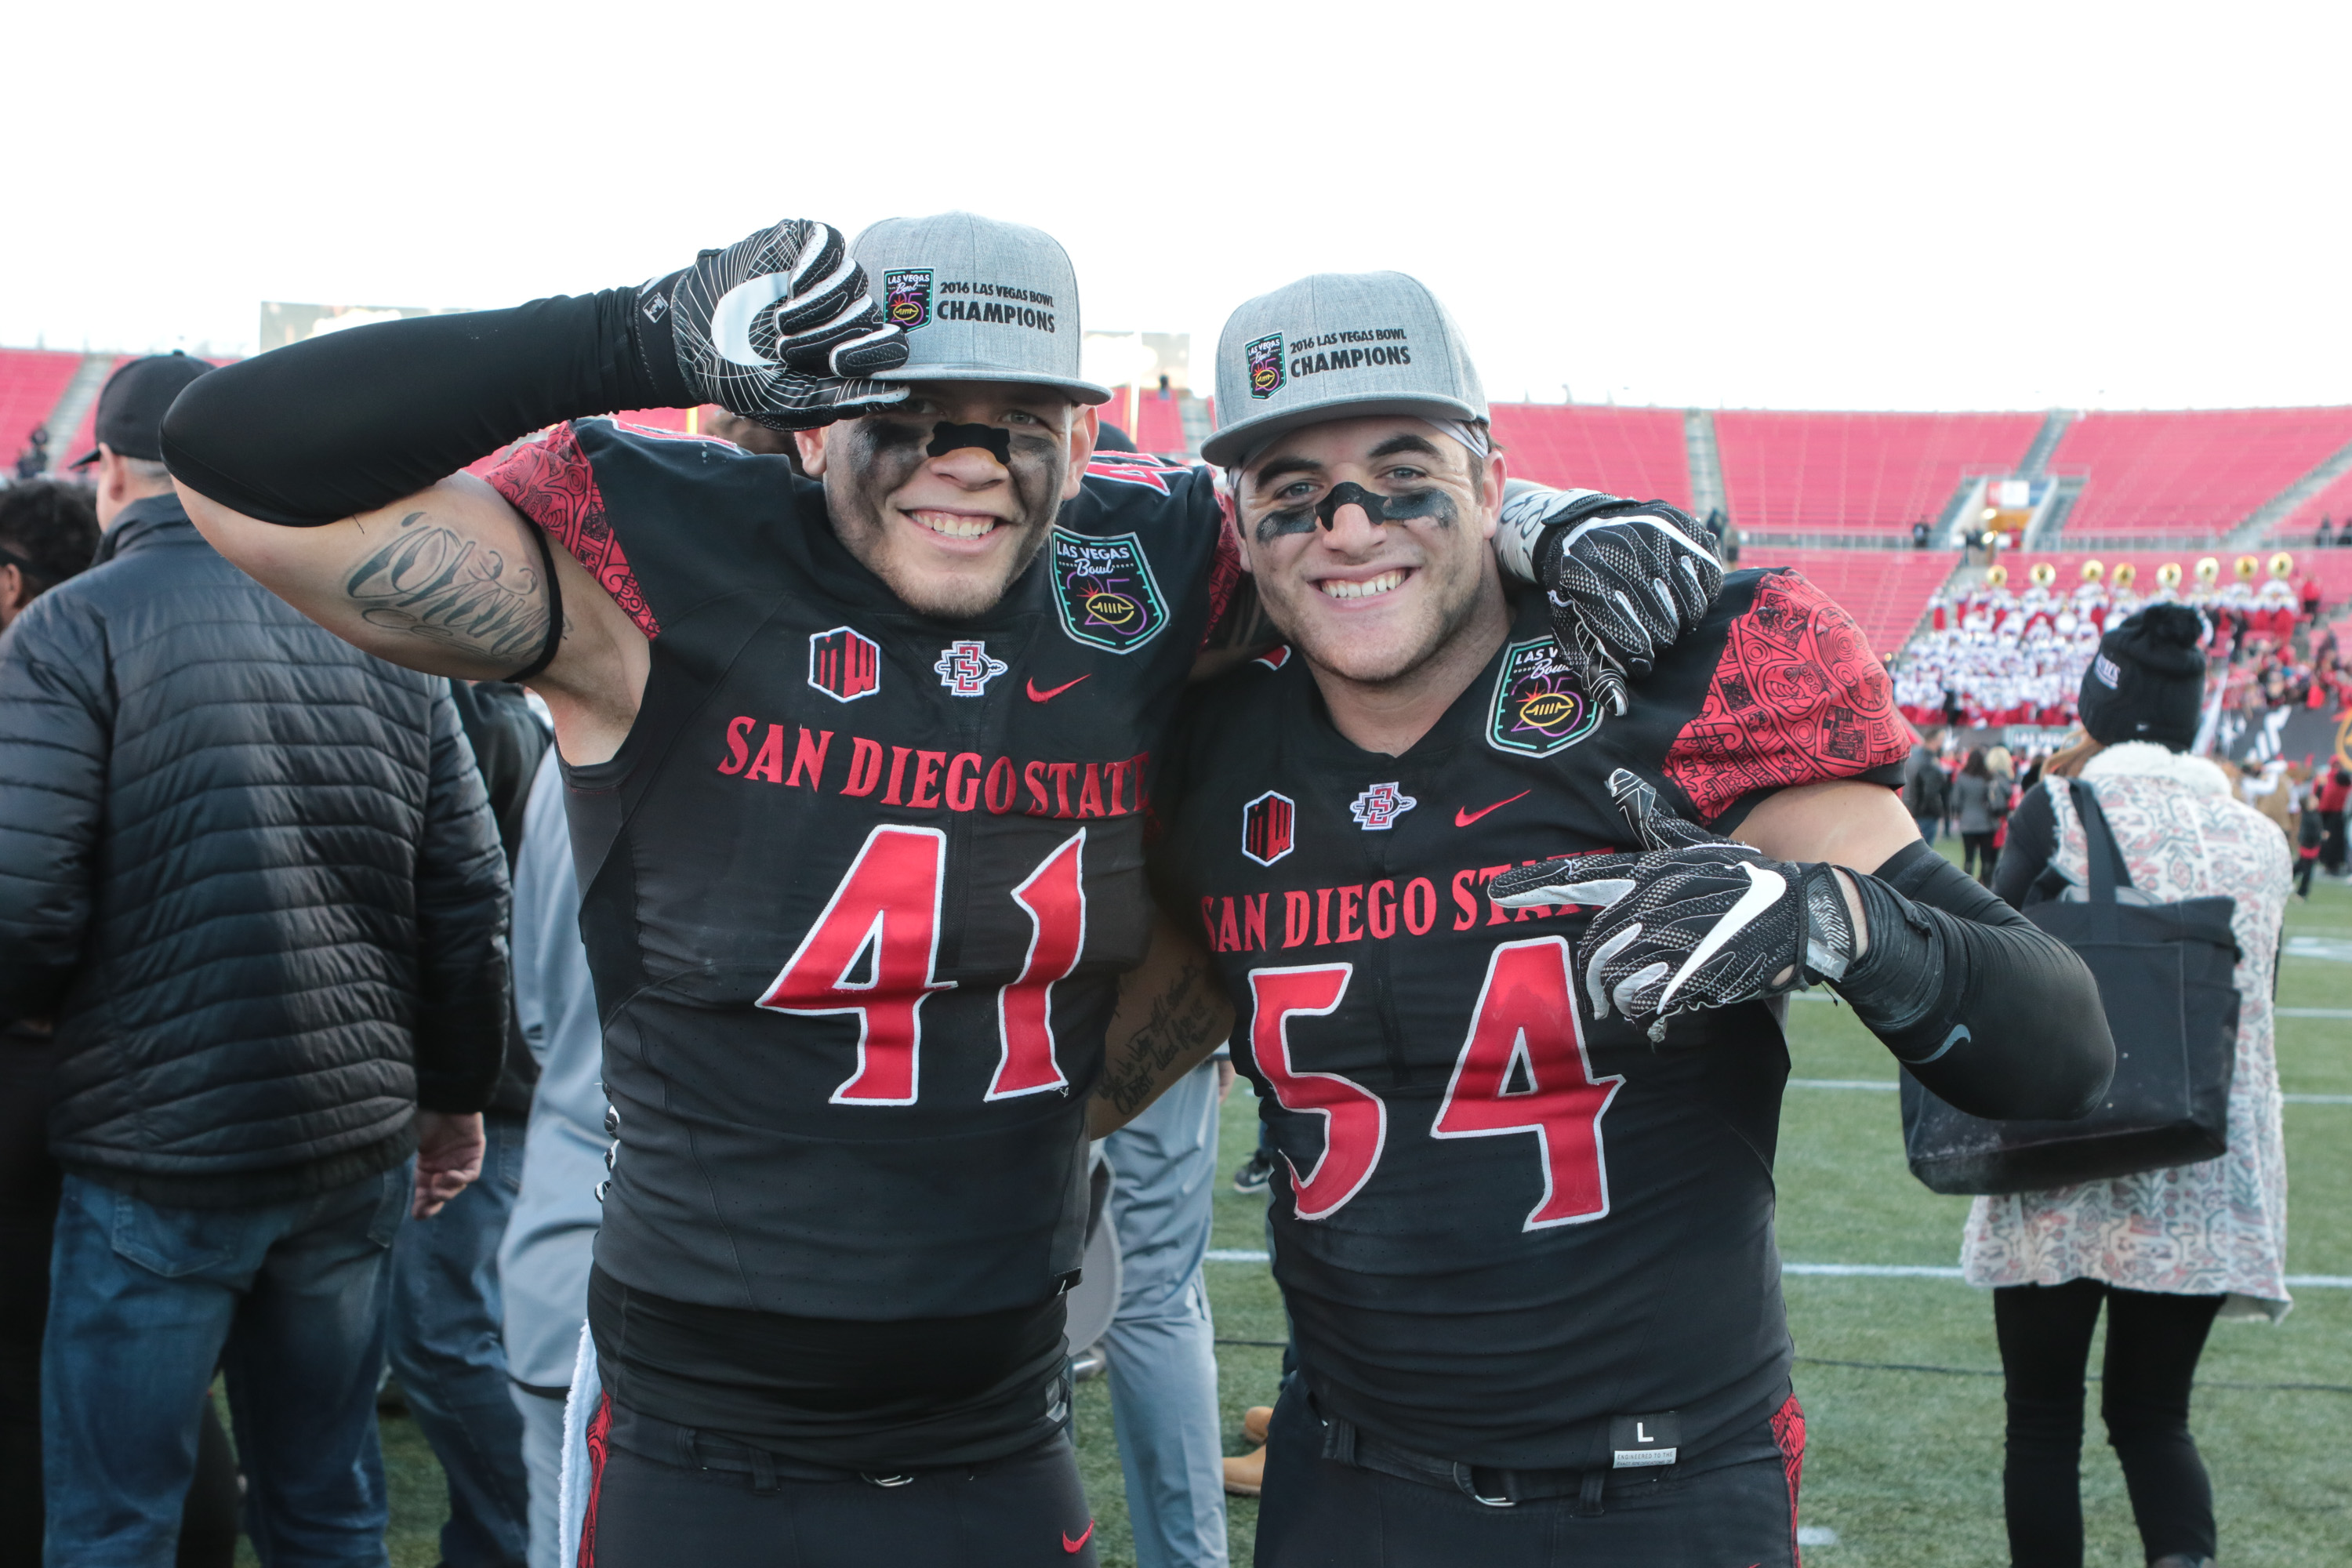 December 17, 2016 Las Vegas, NV. Dakota Turner (41), Calvin Munson (54) showing off their Las Vegas Bowl Champs hats after the 25th LAS VEGAS Bowl Houston Cougars vs San Diego State Aztecs at Sam Boyd Stadium on December 17, 2016. (Photo by Jevone Moore Full Image 360)